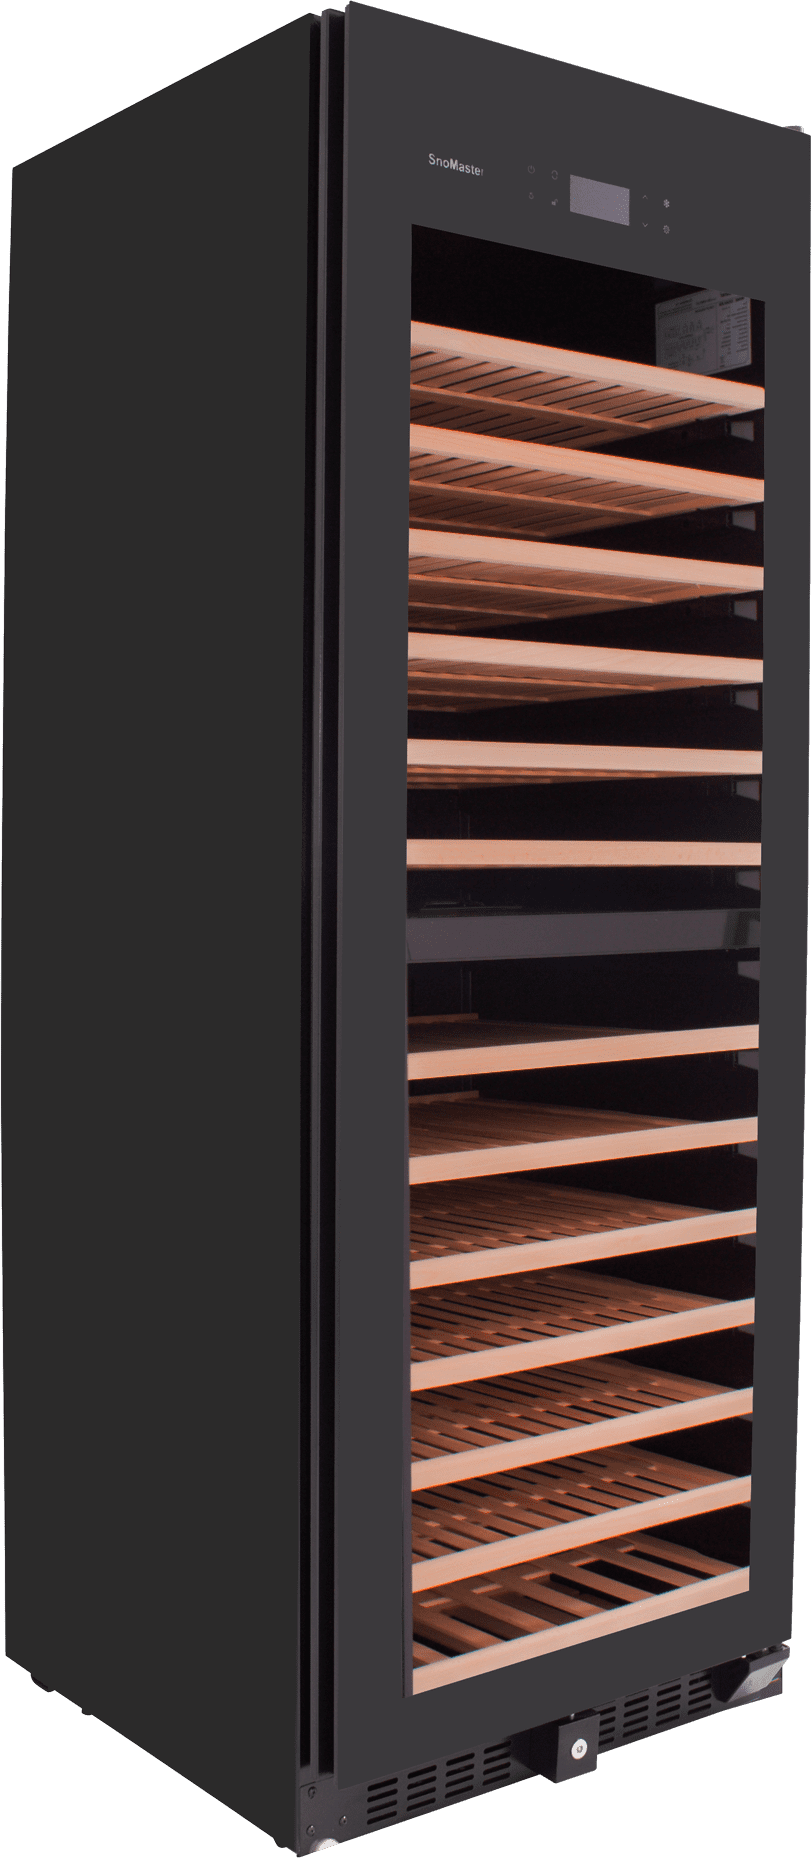 SnoMaster 181 Bottle Upright Dual Zone Wine Cooler (VT181PRO) with Auto Defrost Right View Close Up